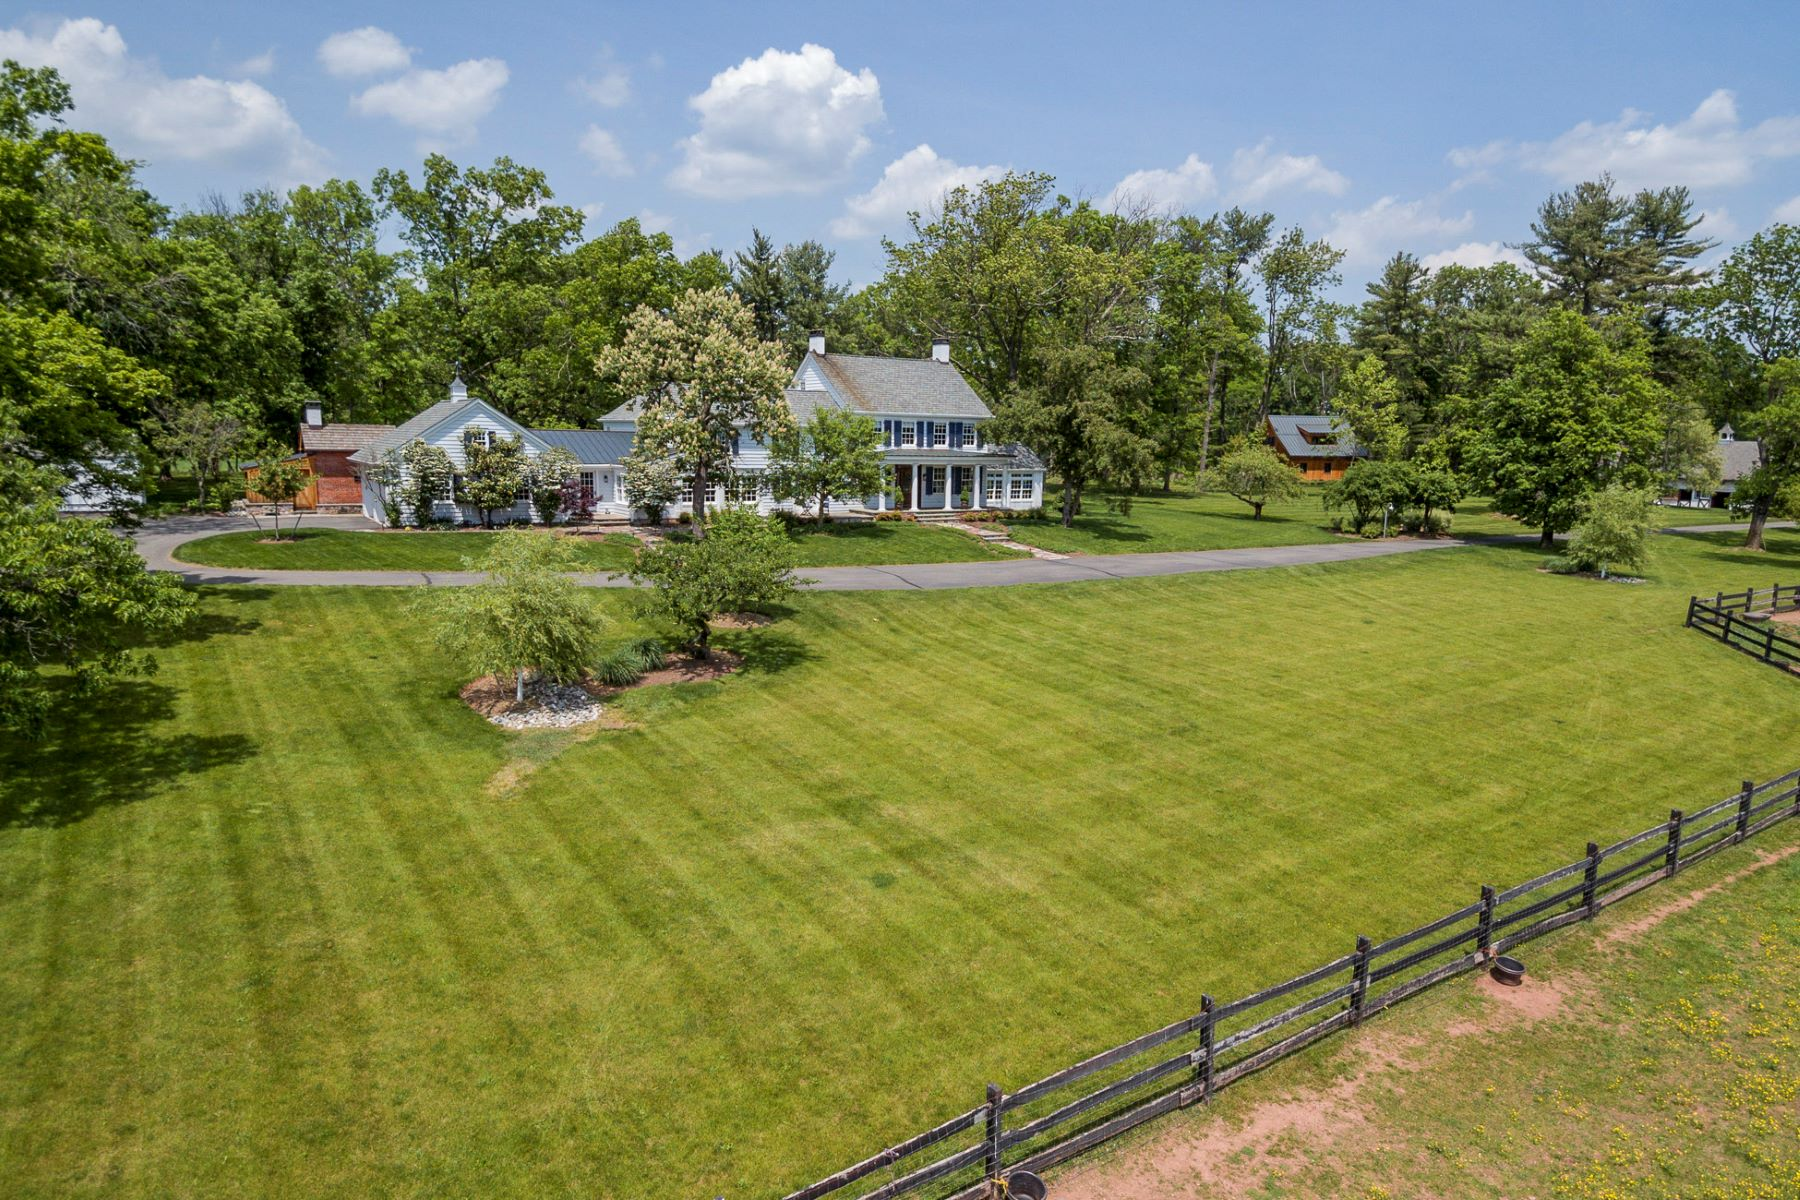 Maison unifamiliale pour l Vente à Historic Farm Reimagined for the Modern Equestrian - Hopewell Township 266 Province Line Road Skillman, New Jersey 08558 États-UnisDans/Autour: Hopewell Township